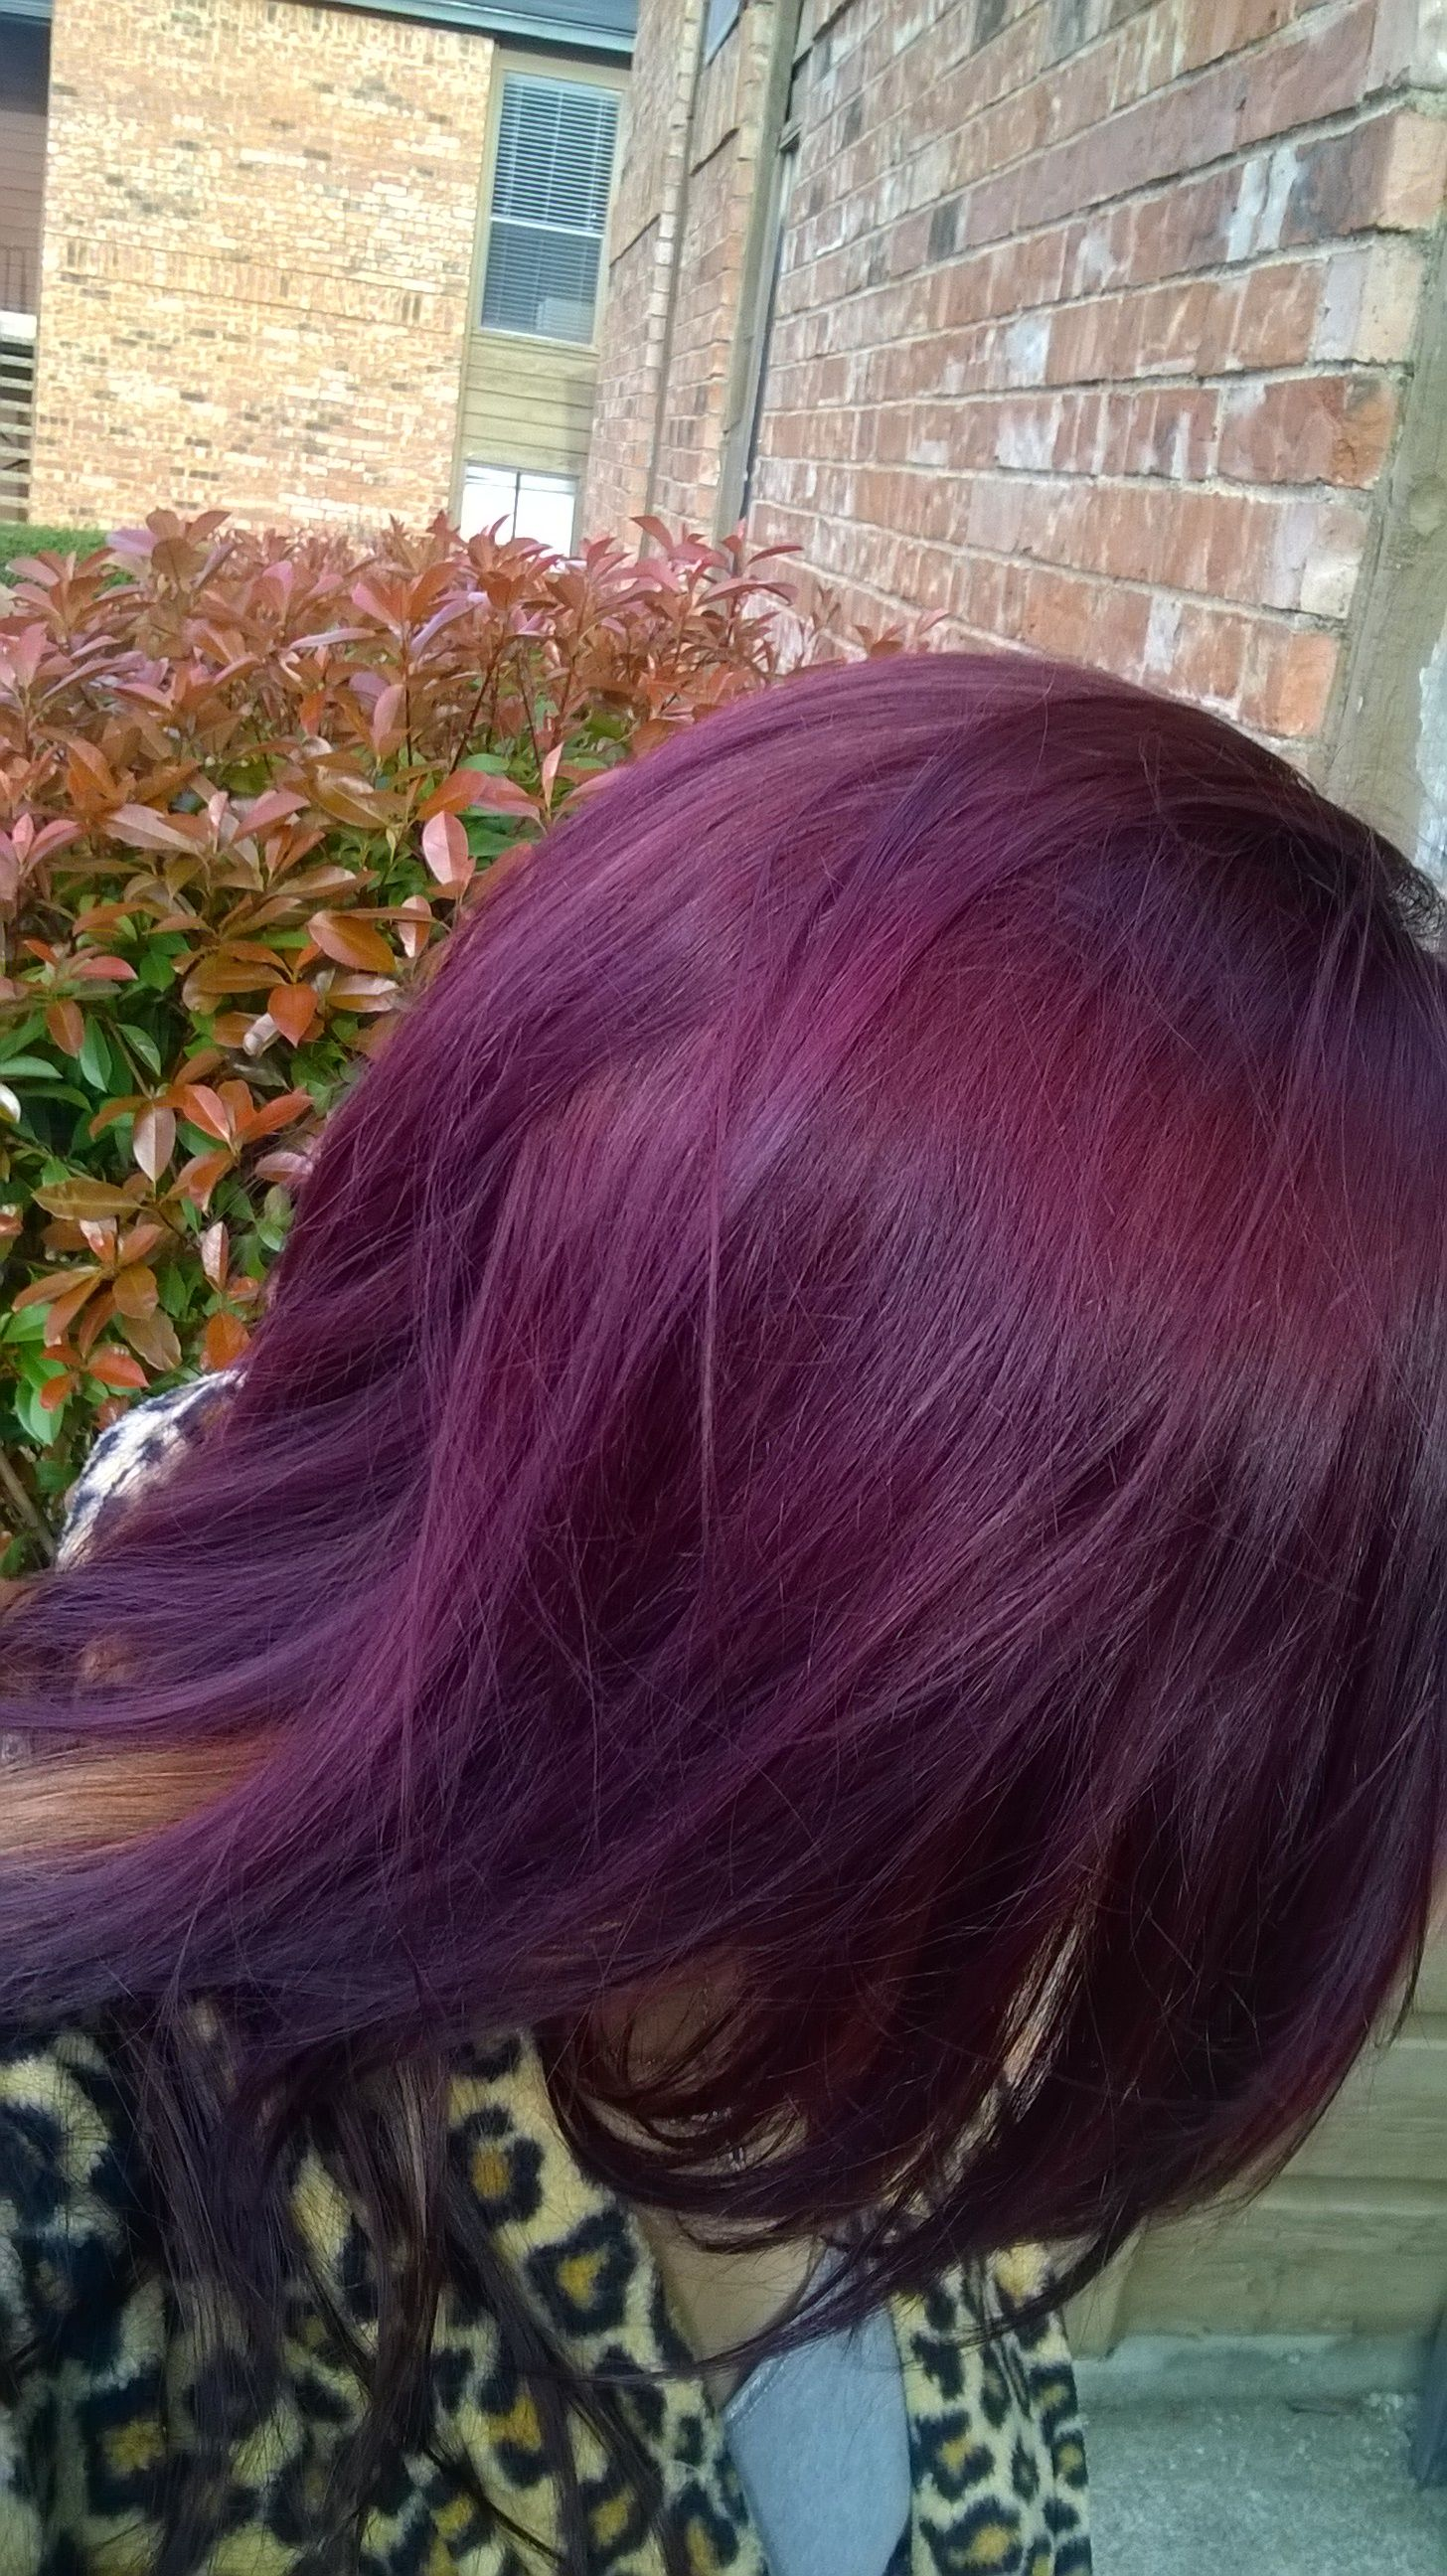 Almost done with my spring 2014 look. Color London lilac with a few drops of red intensifier. Will be blonde in front. Gallery